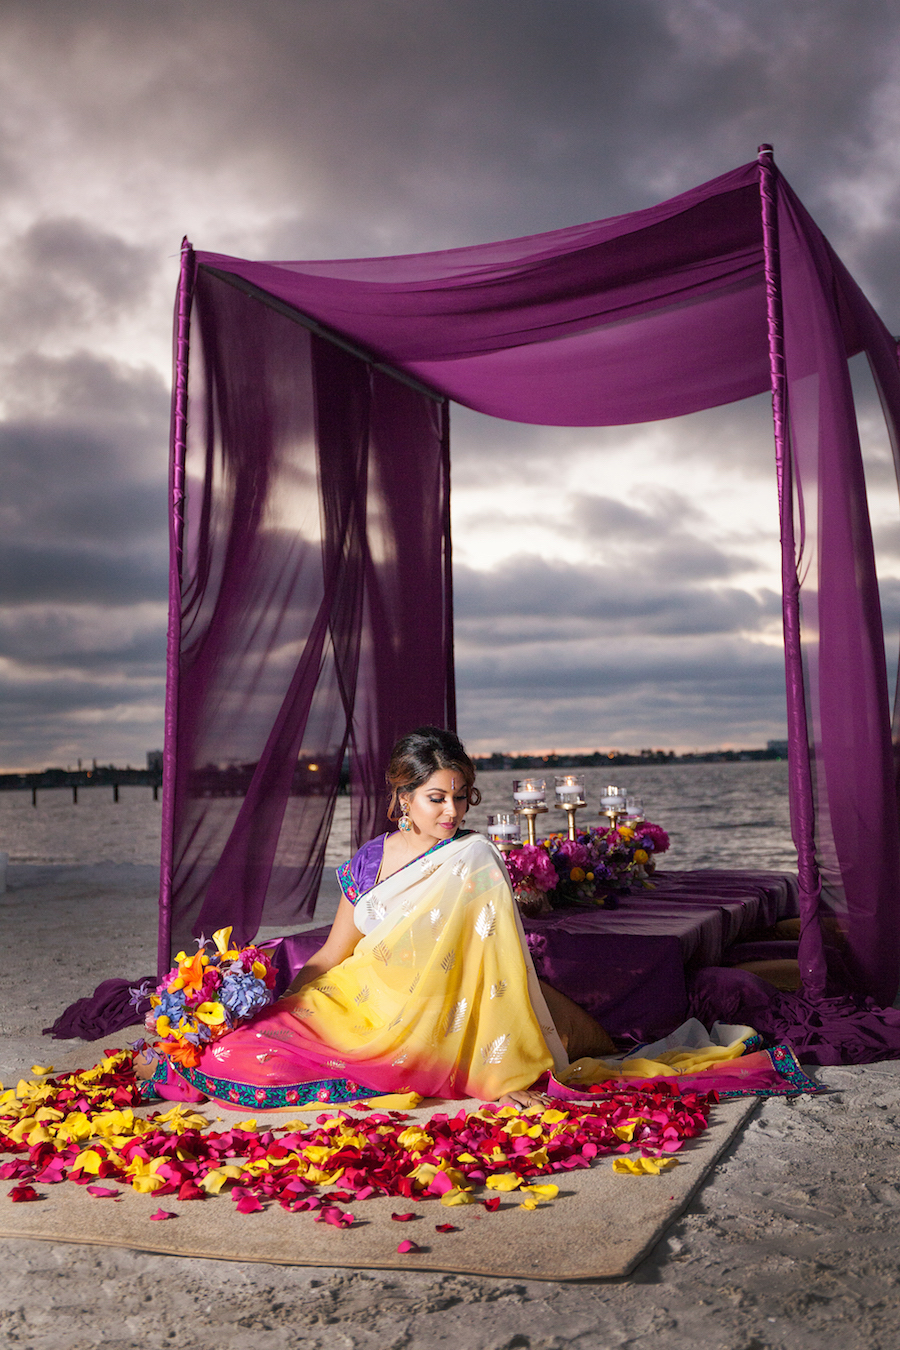 Asian Fusion Bride | St Petersburg Wedding with Purple and Yellow Ceremony Flower Rose Petals and Purple Canopy Tent | St. Petersburg Wedding Florist Iza's Flowers